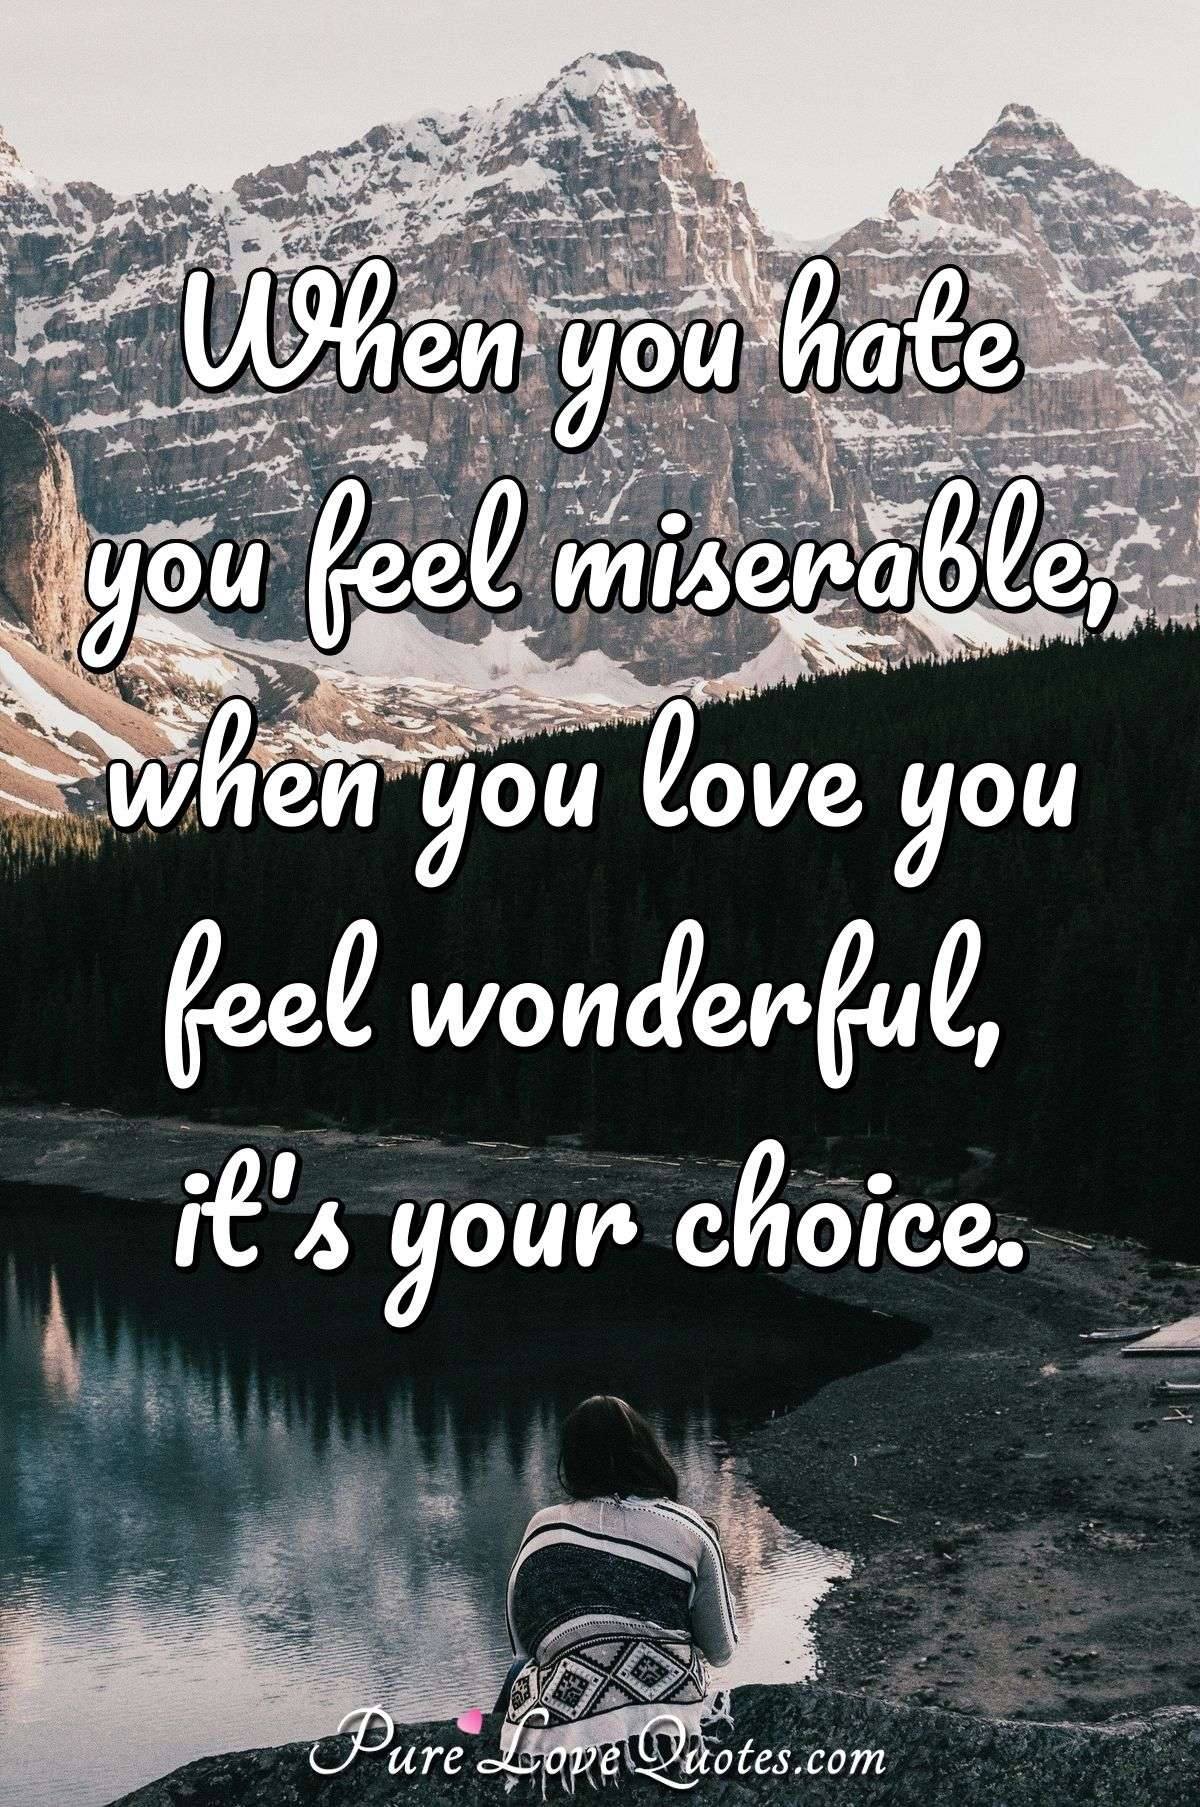 When you hate you feel miserable, when you love you feel wonderful, it's your choice. - PureLoveQuotes.com